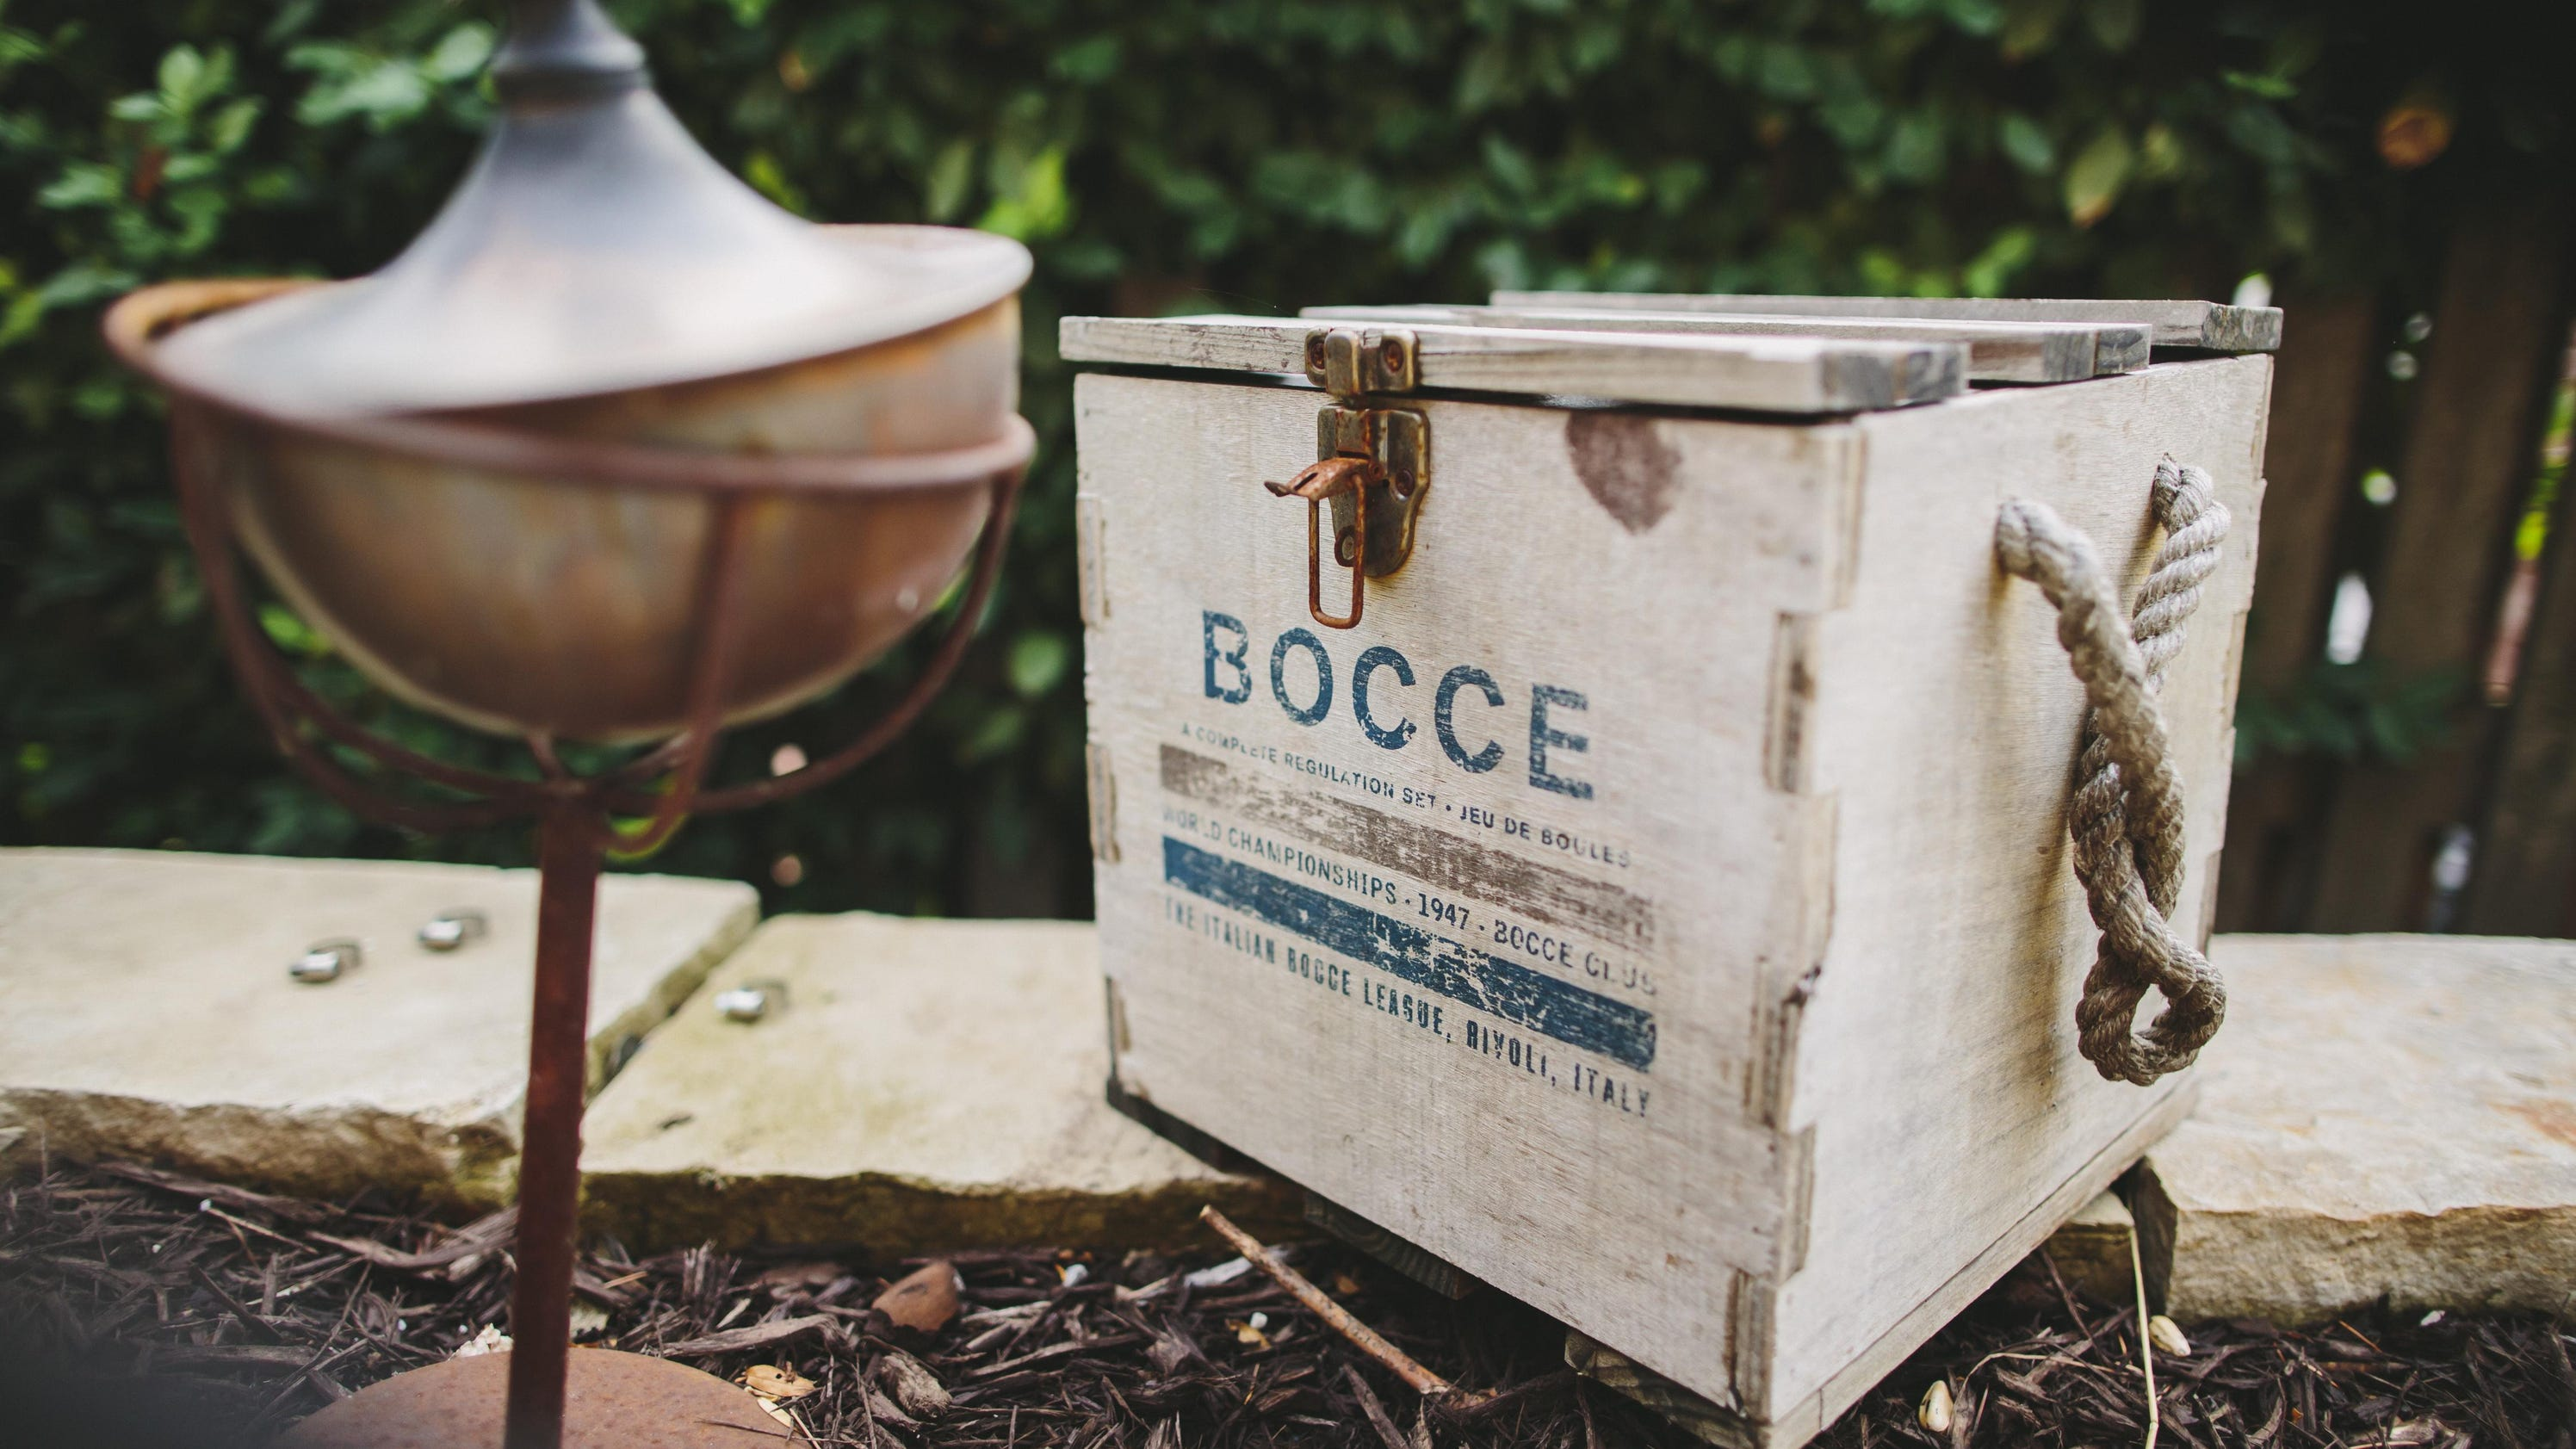 diy project build your own bocce ball court